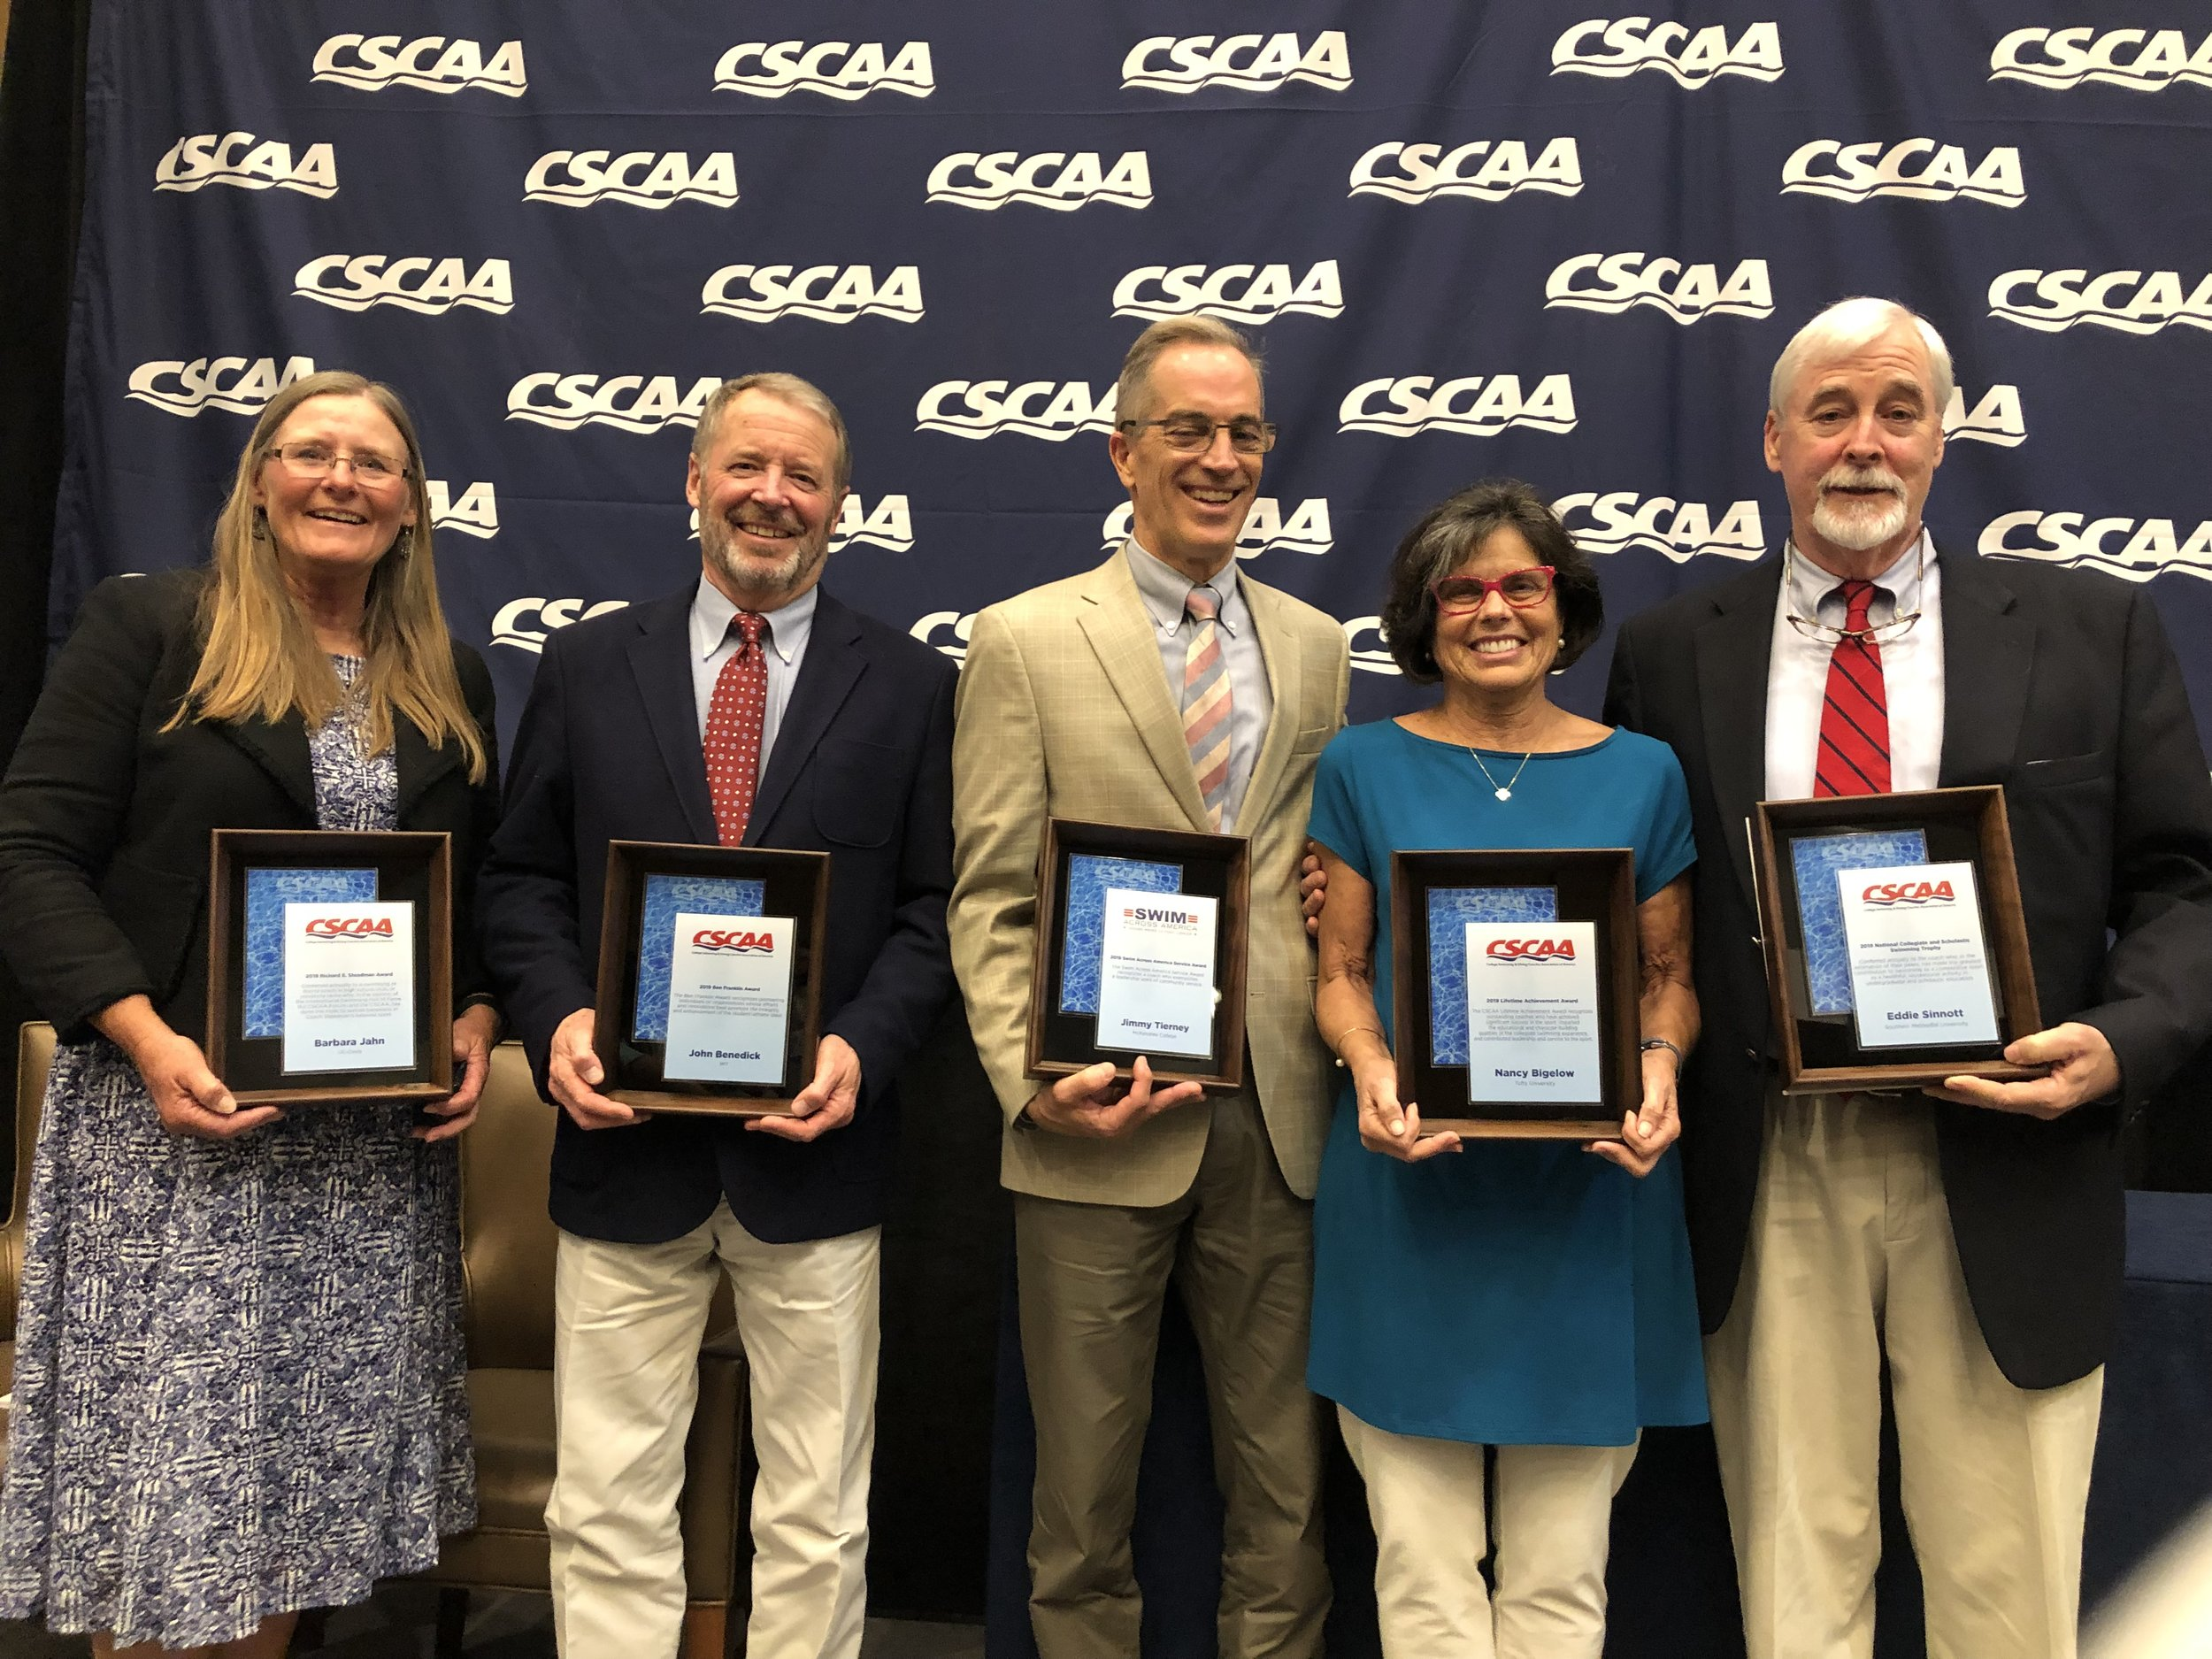 2019 Award winners - barbara jahn, john benedick, jimmy tierney, nancy bigelow, eddie sinnott